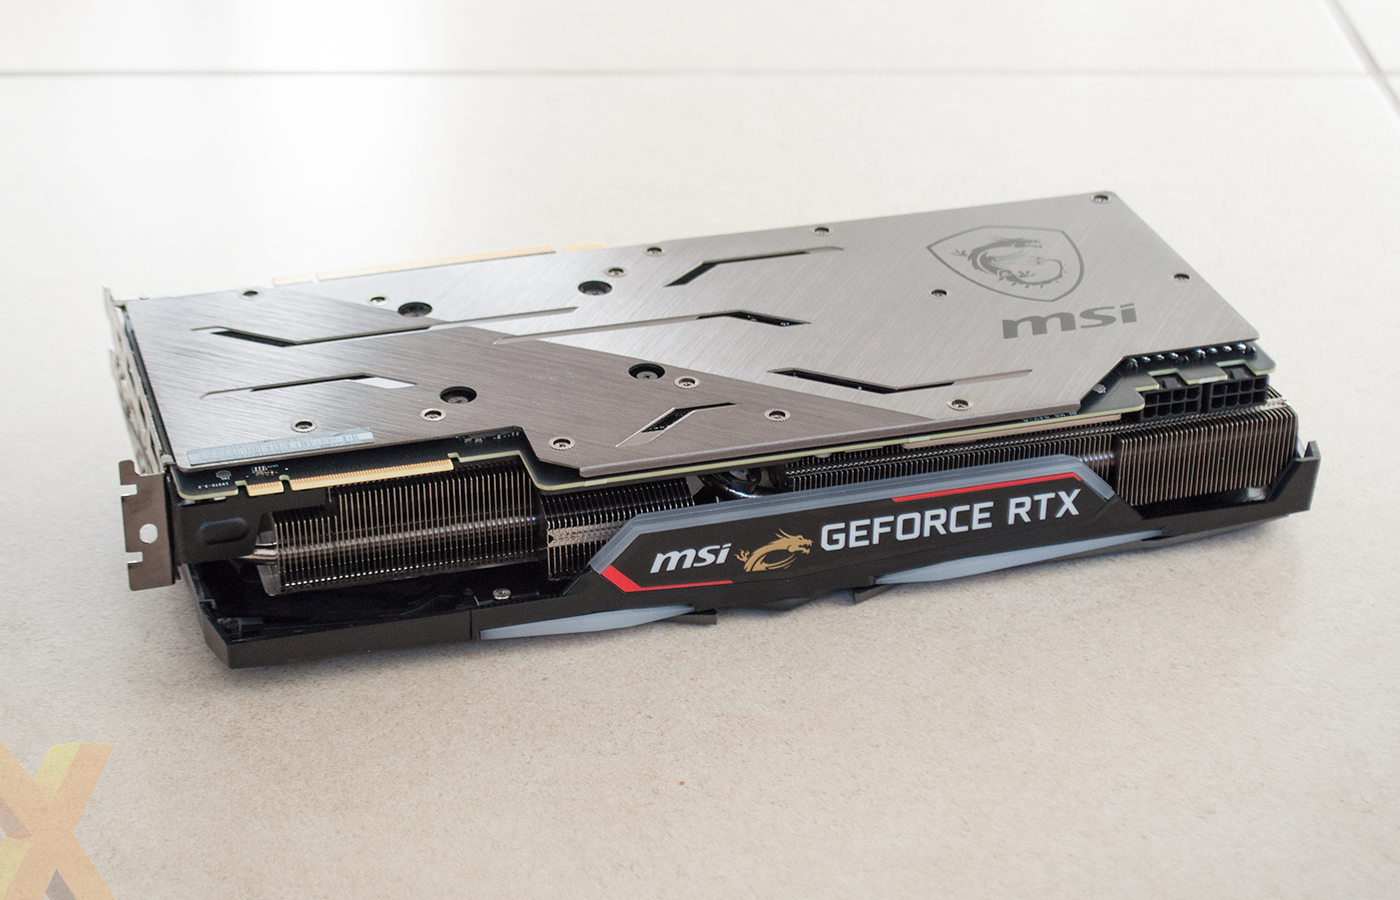 Review: MSI GeForce RTX 2080 Gaming X Trio - Graphics